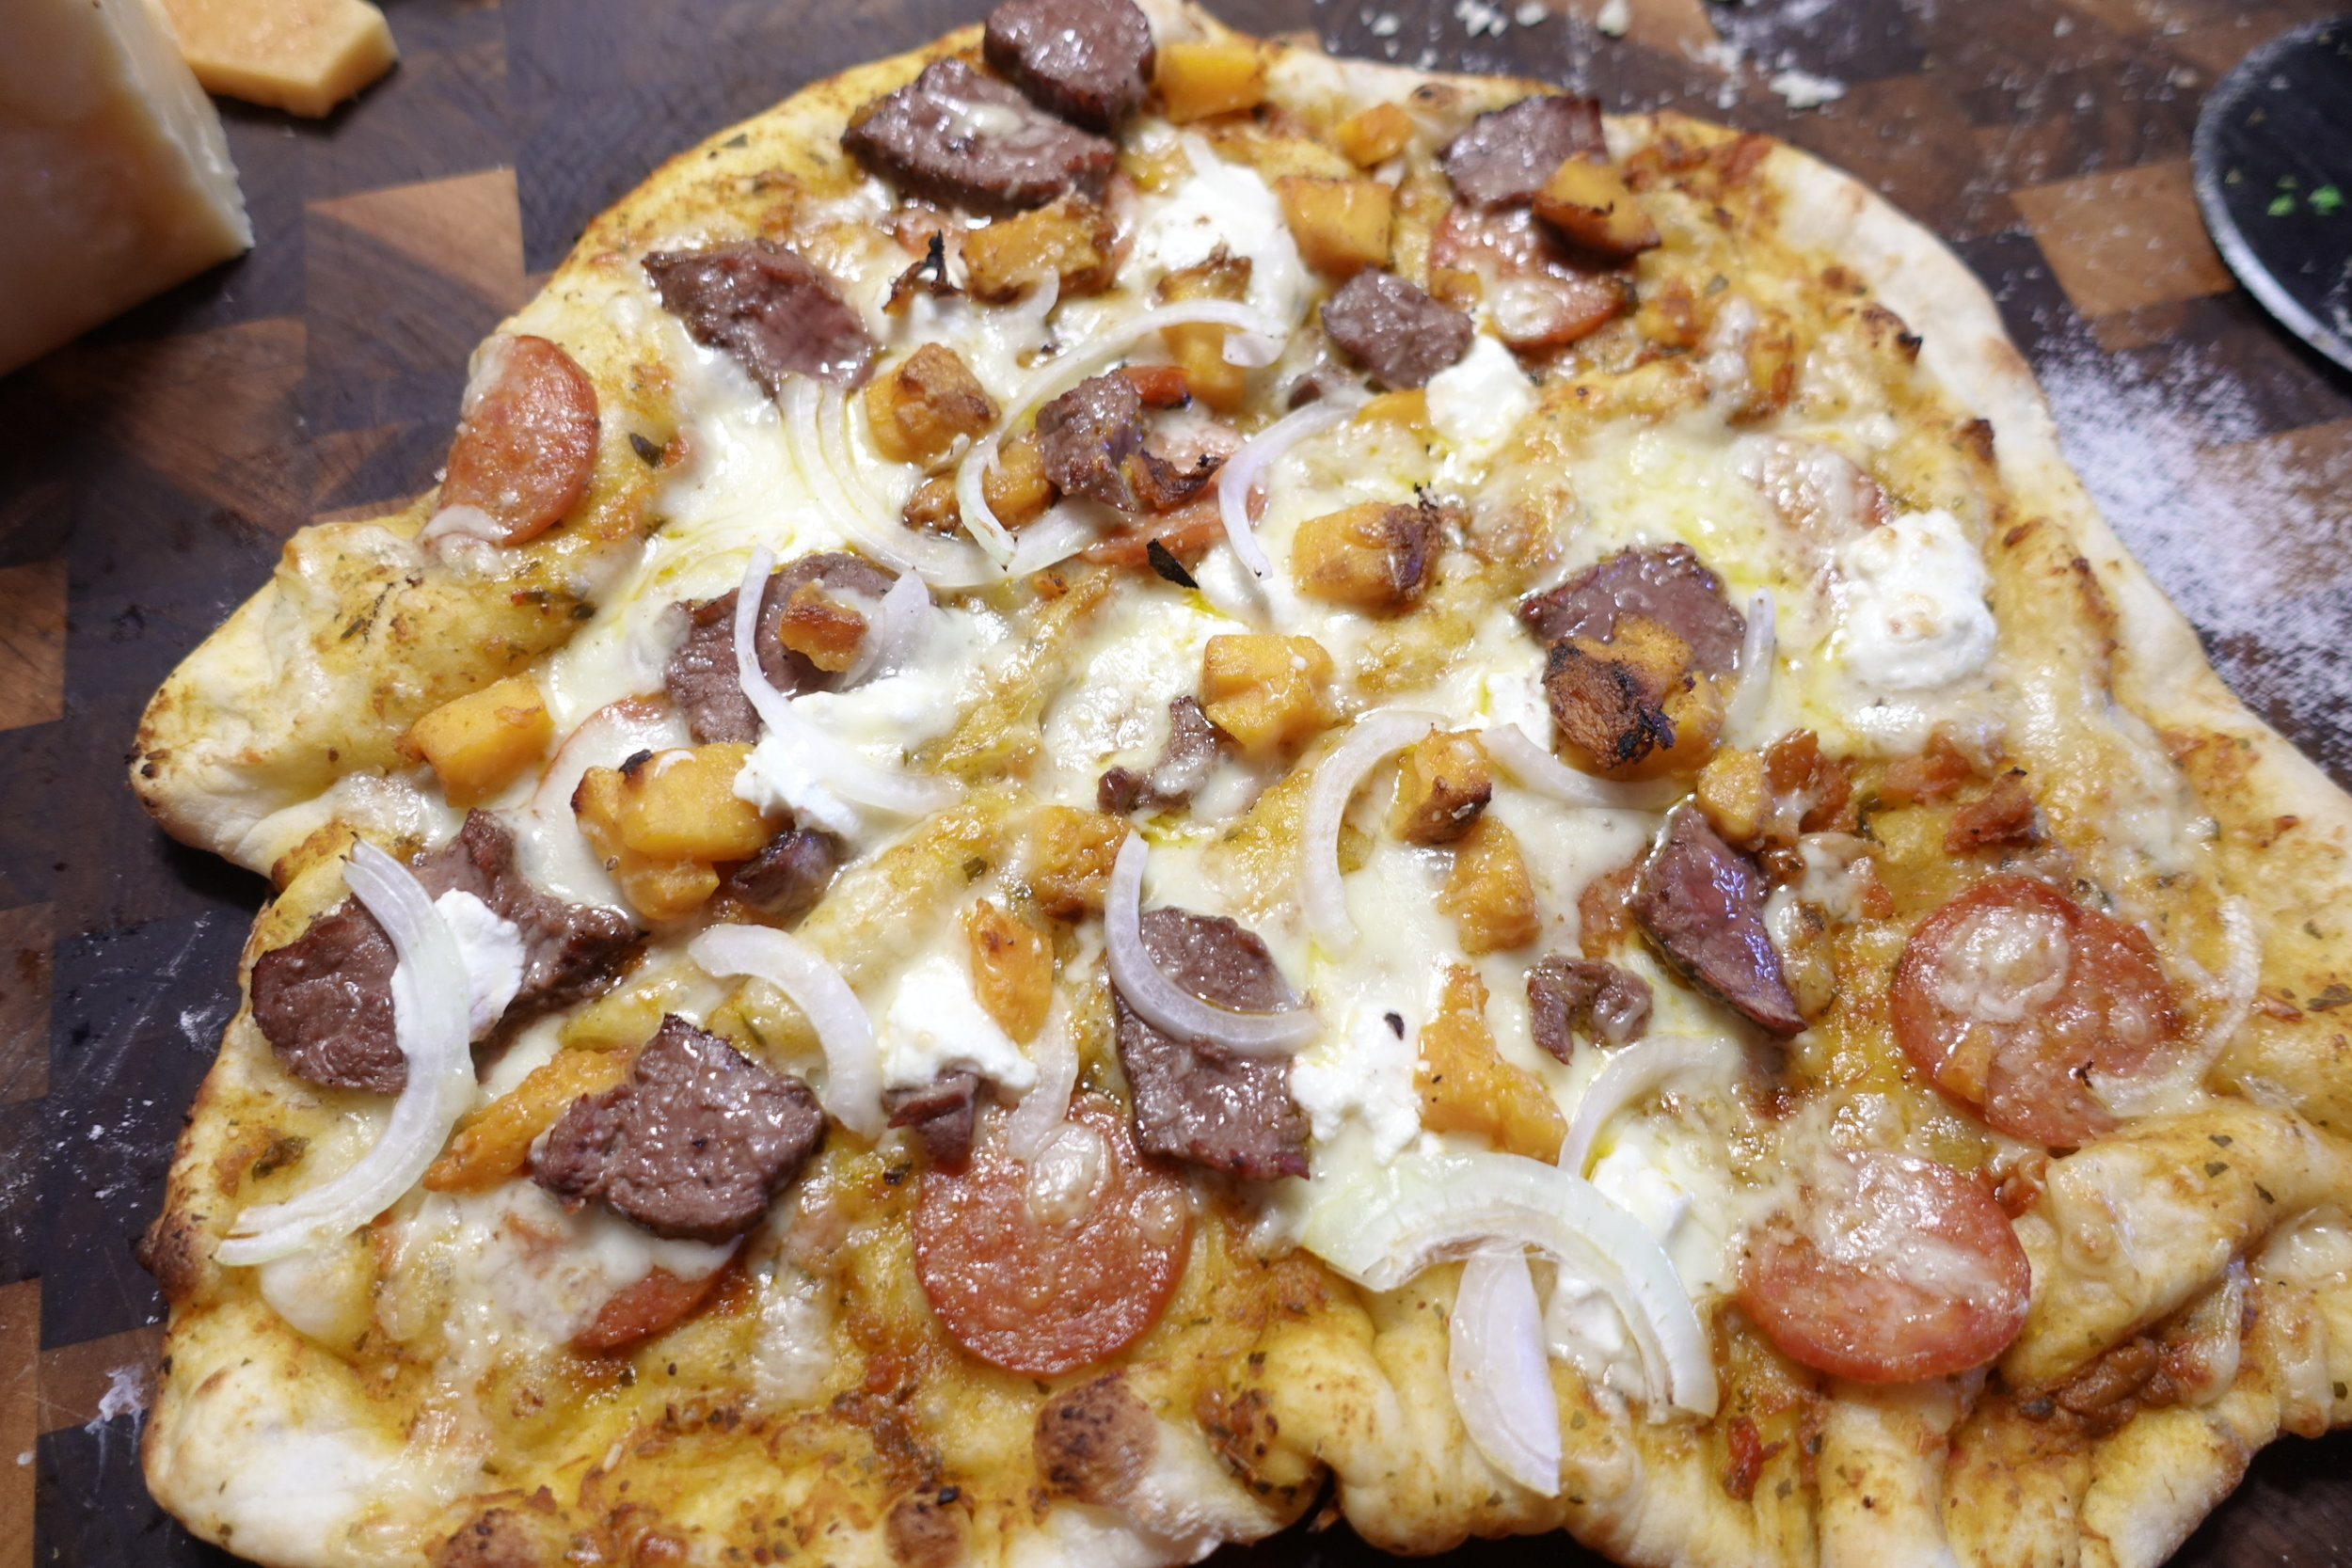 Chorizo, Pepperoni, Sweet Potato, Onion and Cheese Pizza (Goat, Mozzarella and Parmasan)